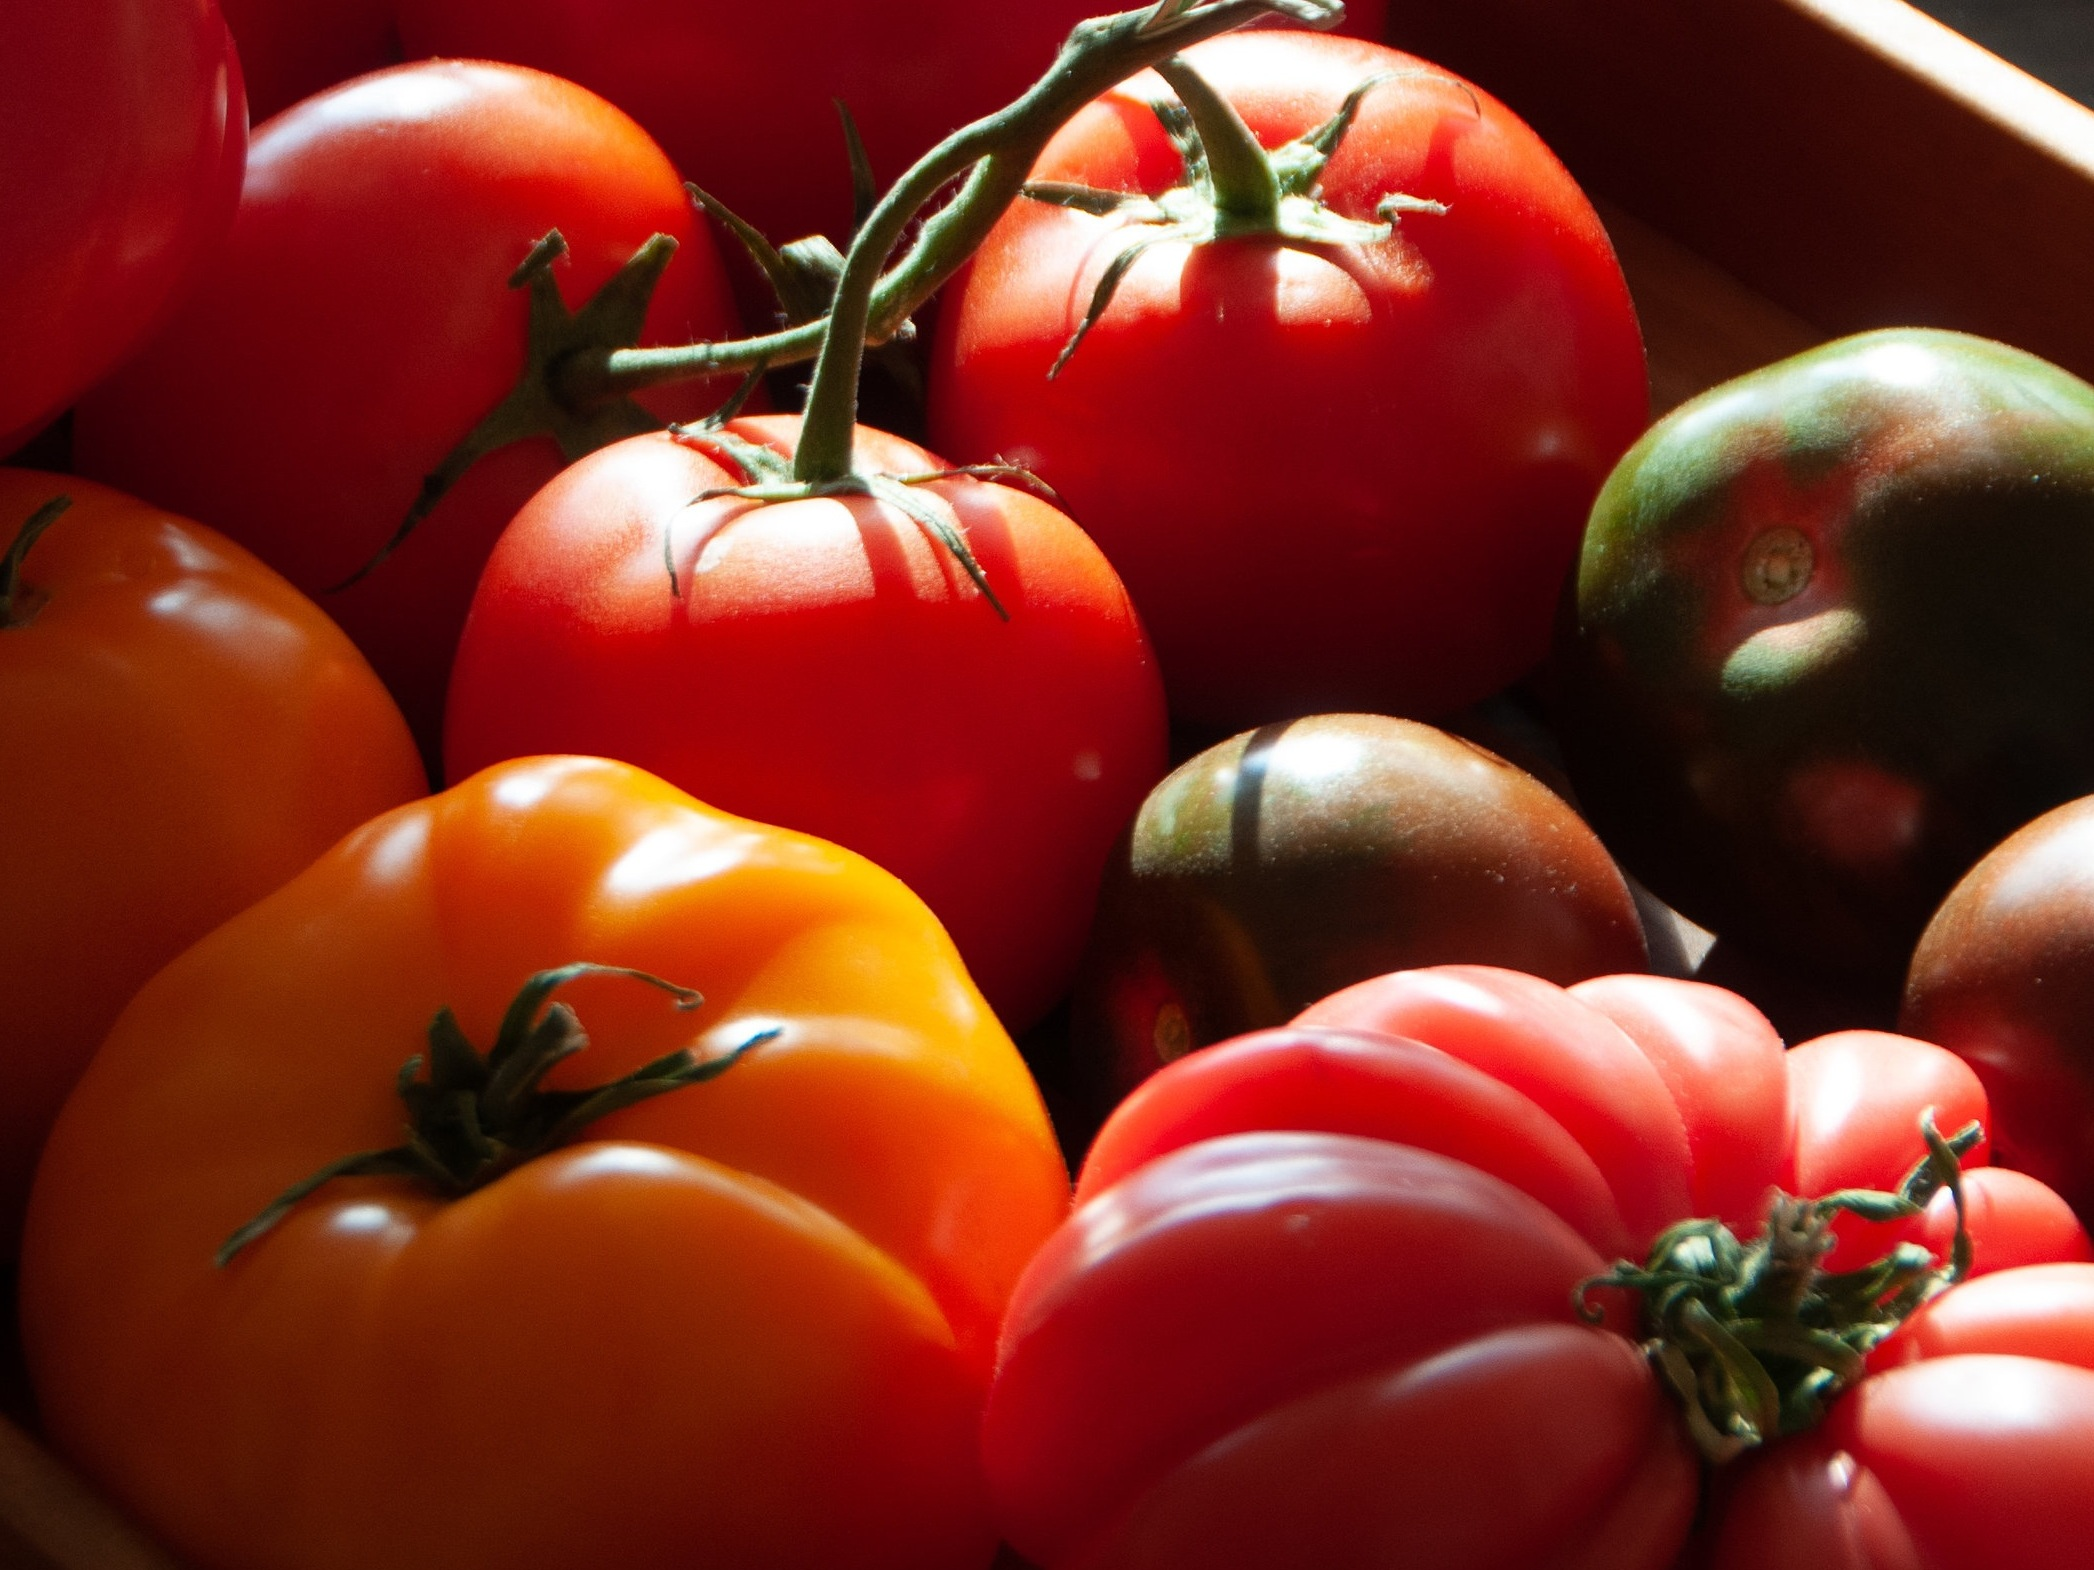 Tomato Tasting - Taste different tomato varieties from three local farms and choose your favorites! Selections are sourced from our friends Hawthorne Valley Farm, Ironwood Farm, and Rock Steady Farm.